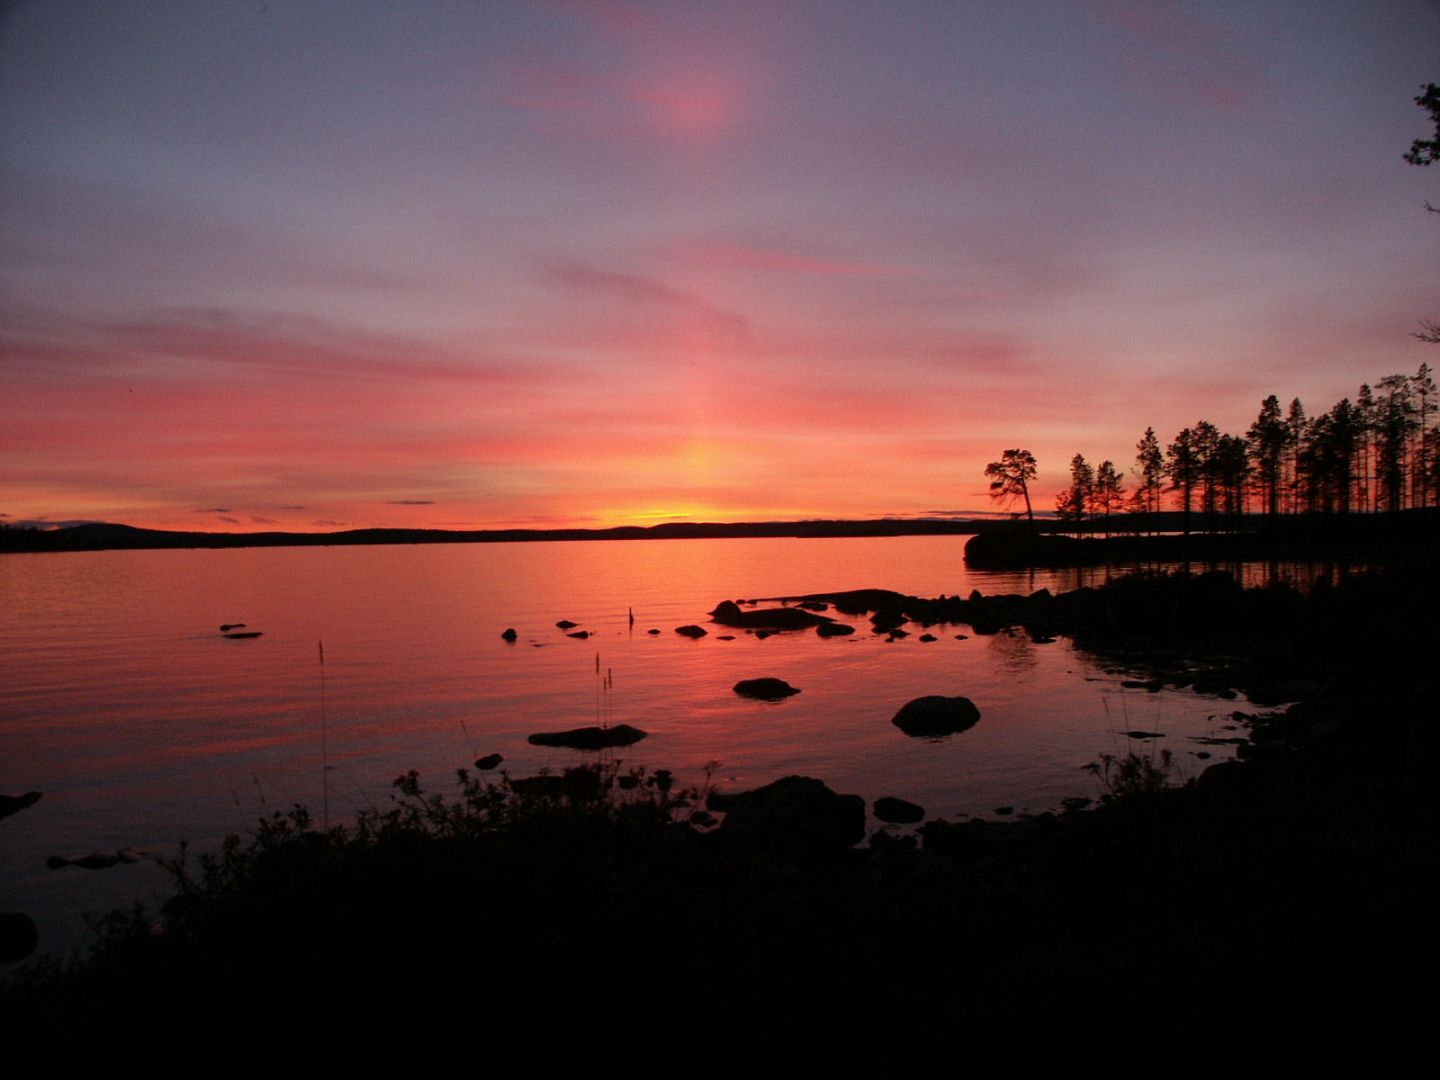 Sunset over Lapland waters